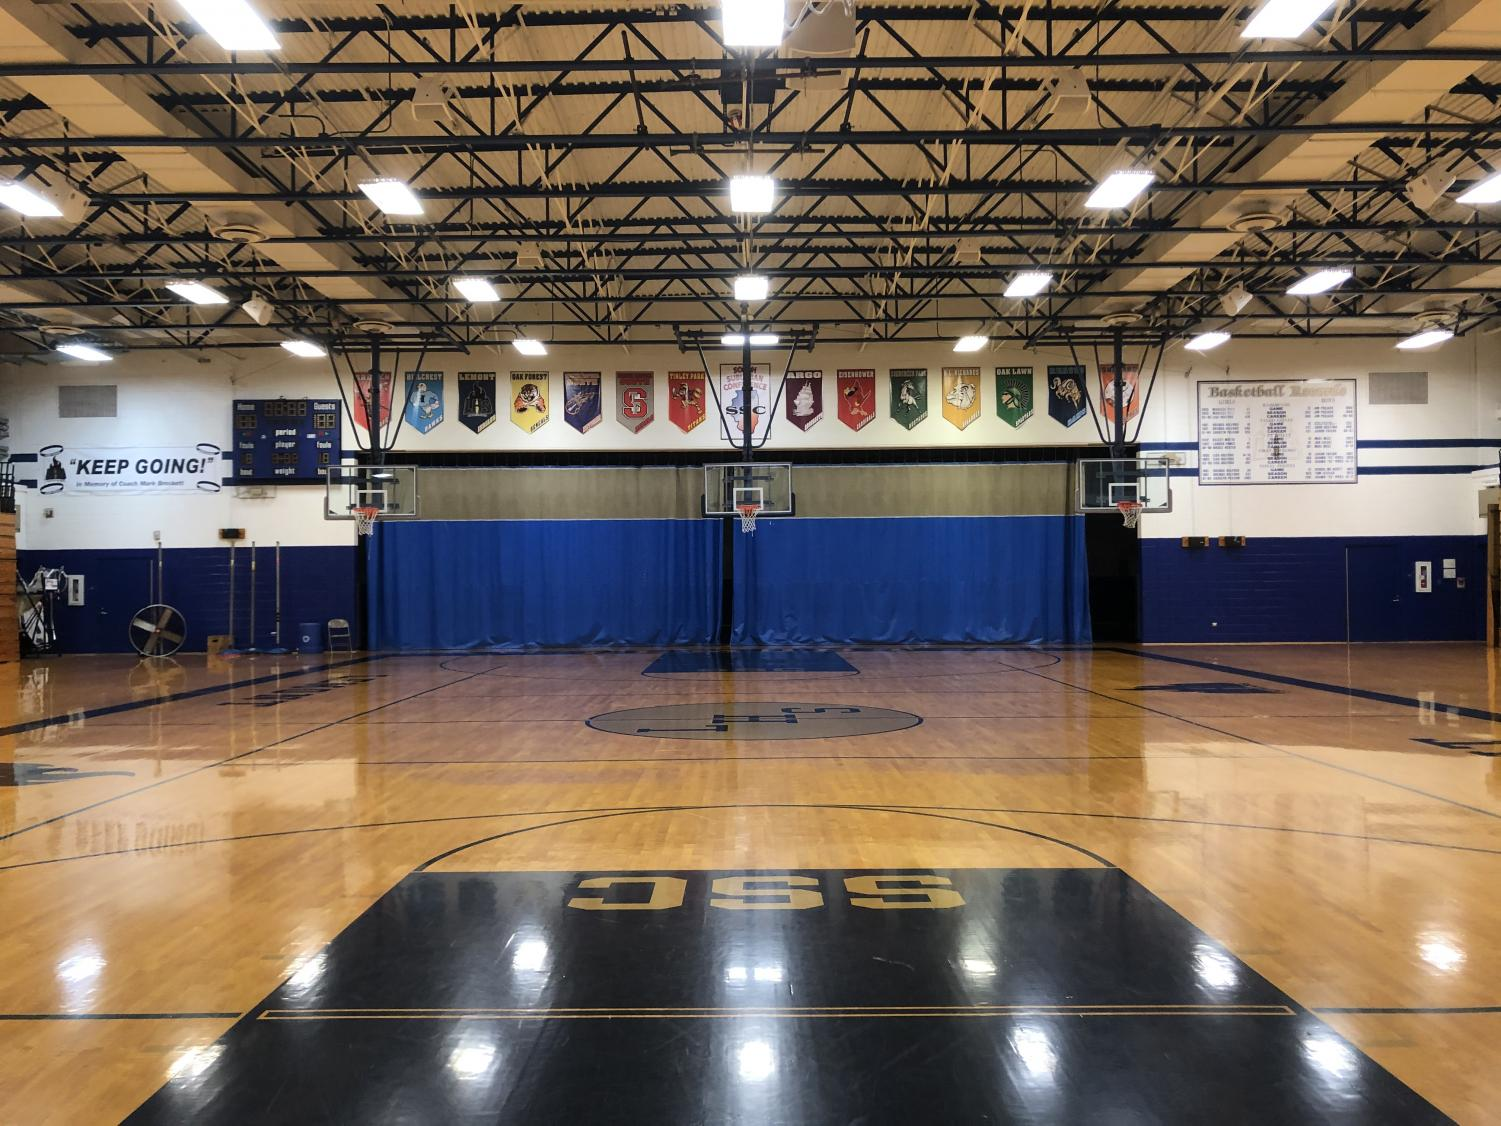 The renovation of the gym will change its entire appearance and structure. From the new flooring to the new walls, the gym will provide a better atmosphere for athletic programs and gym usage.